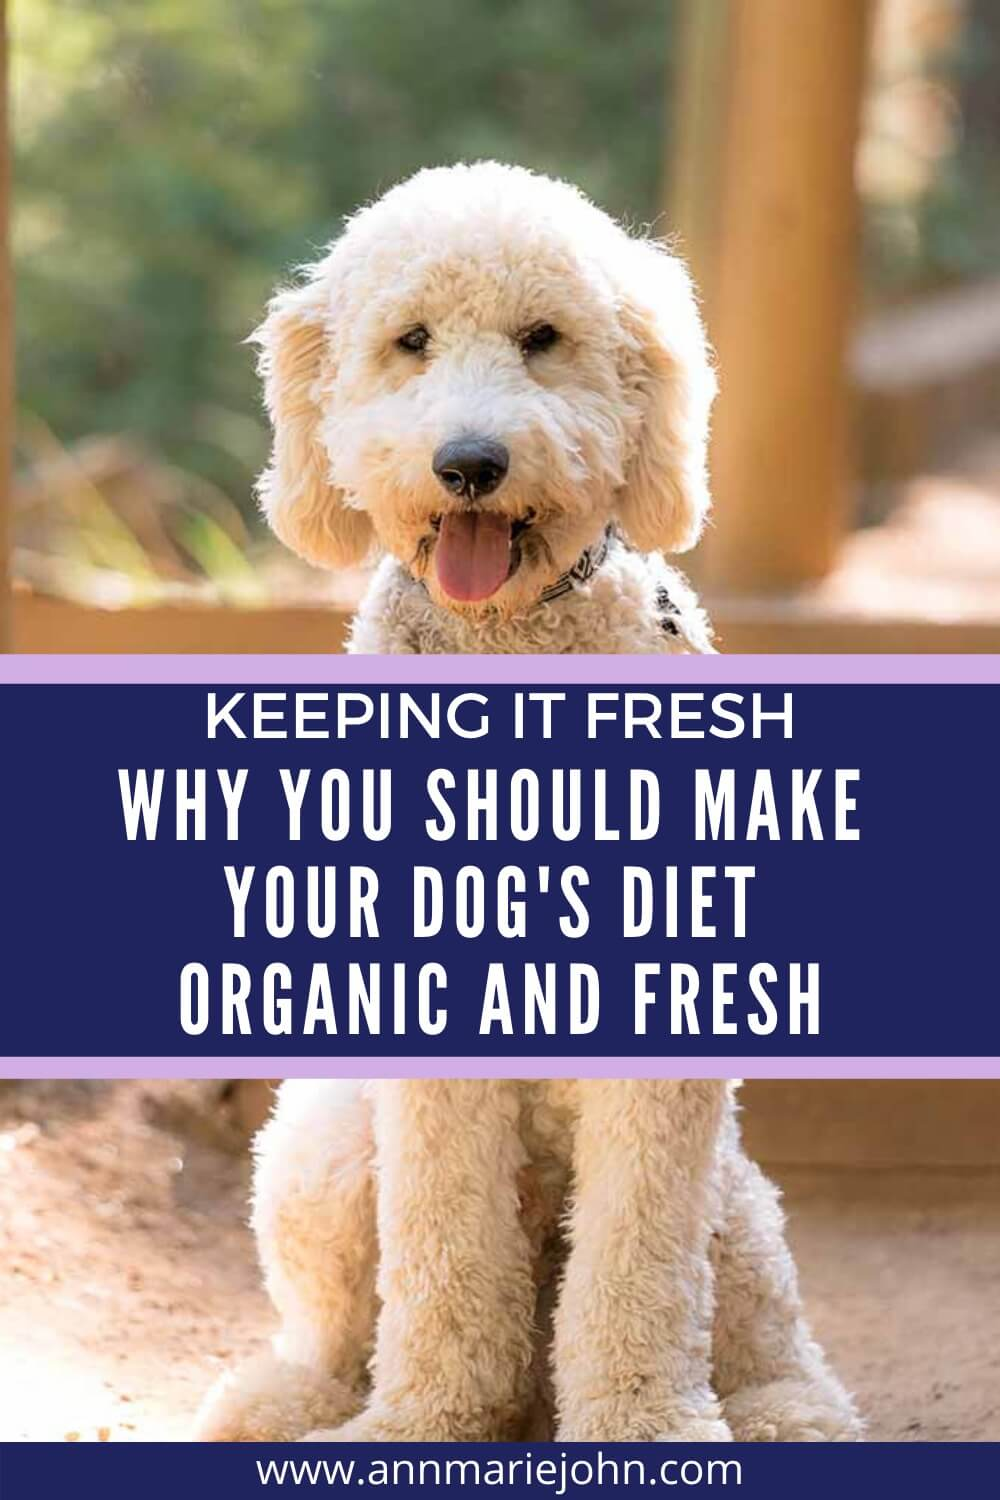 Keeping It Fresh: Why You Should Make Your Dog's Diet Organic and Fresh